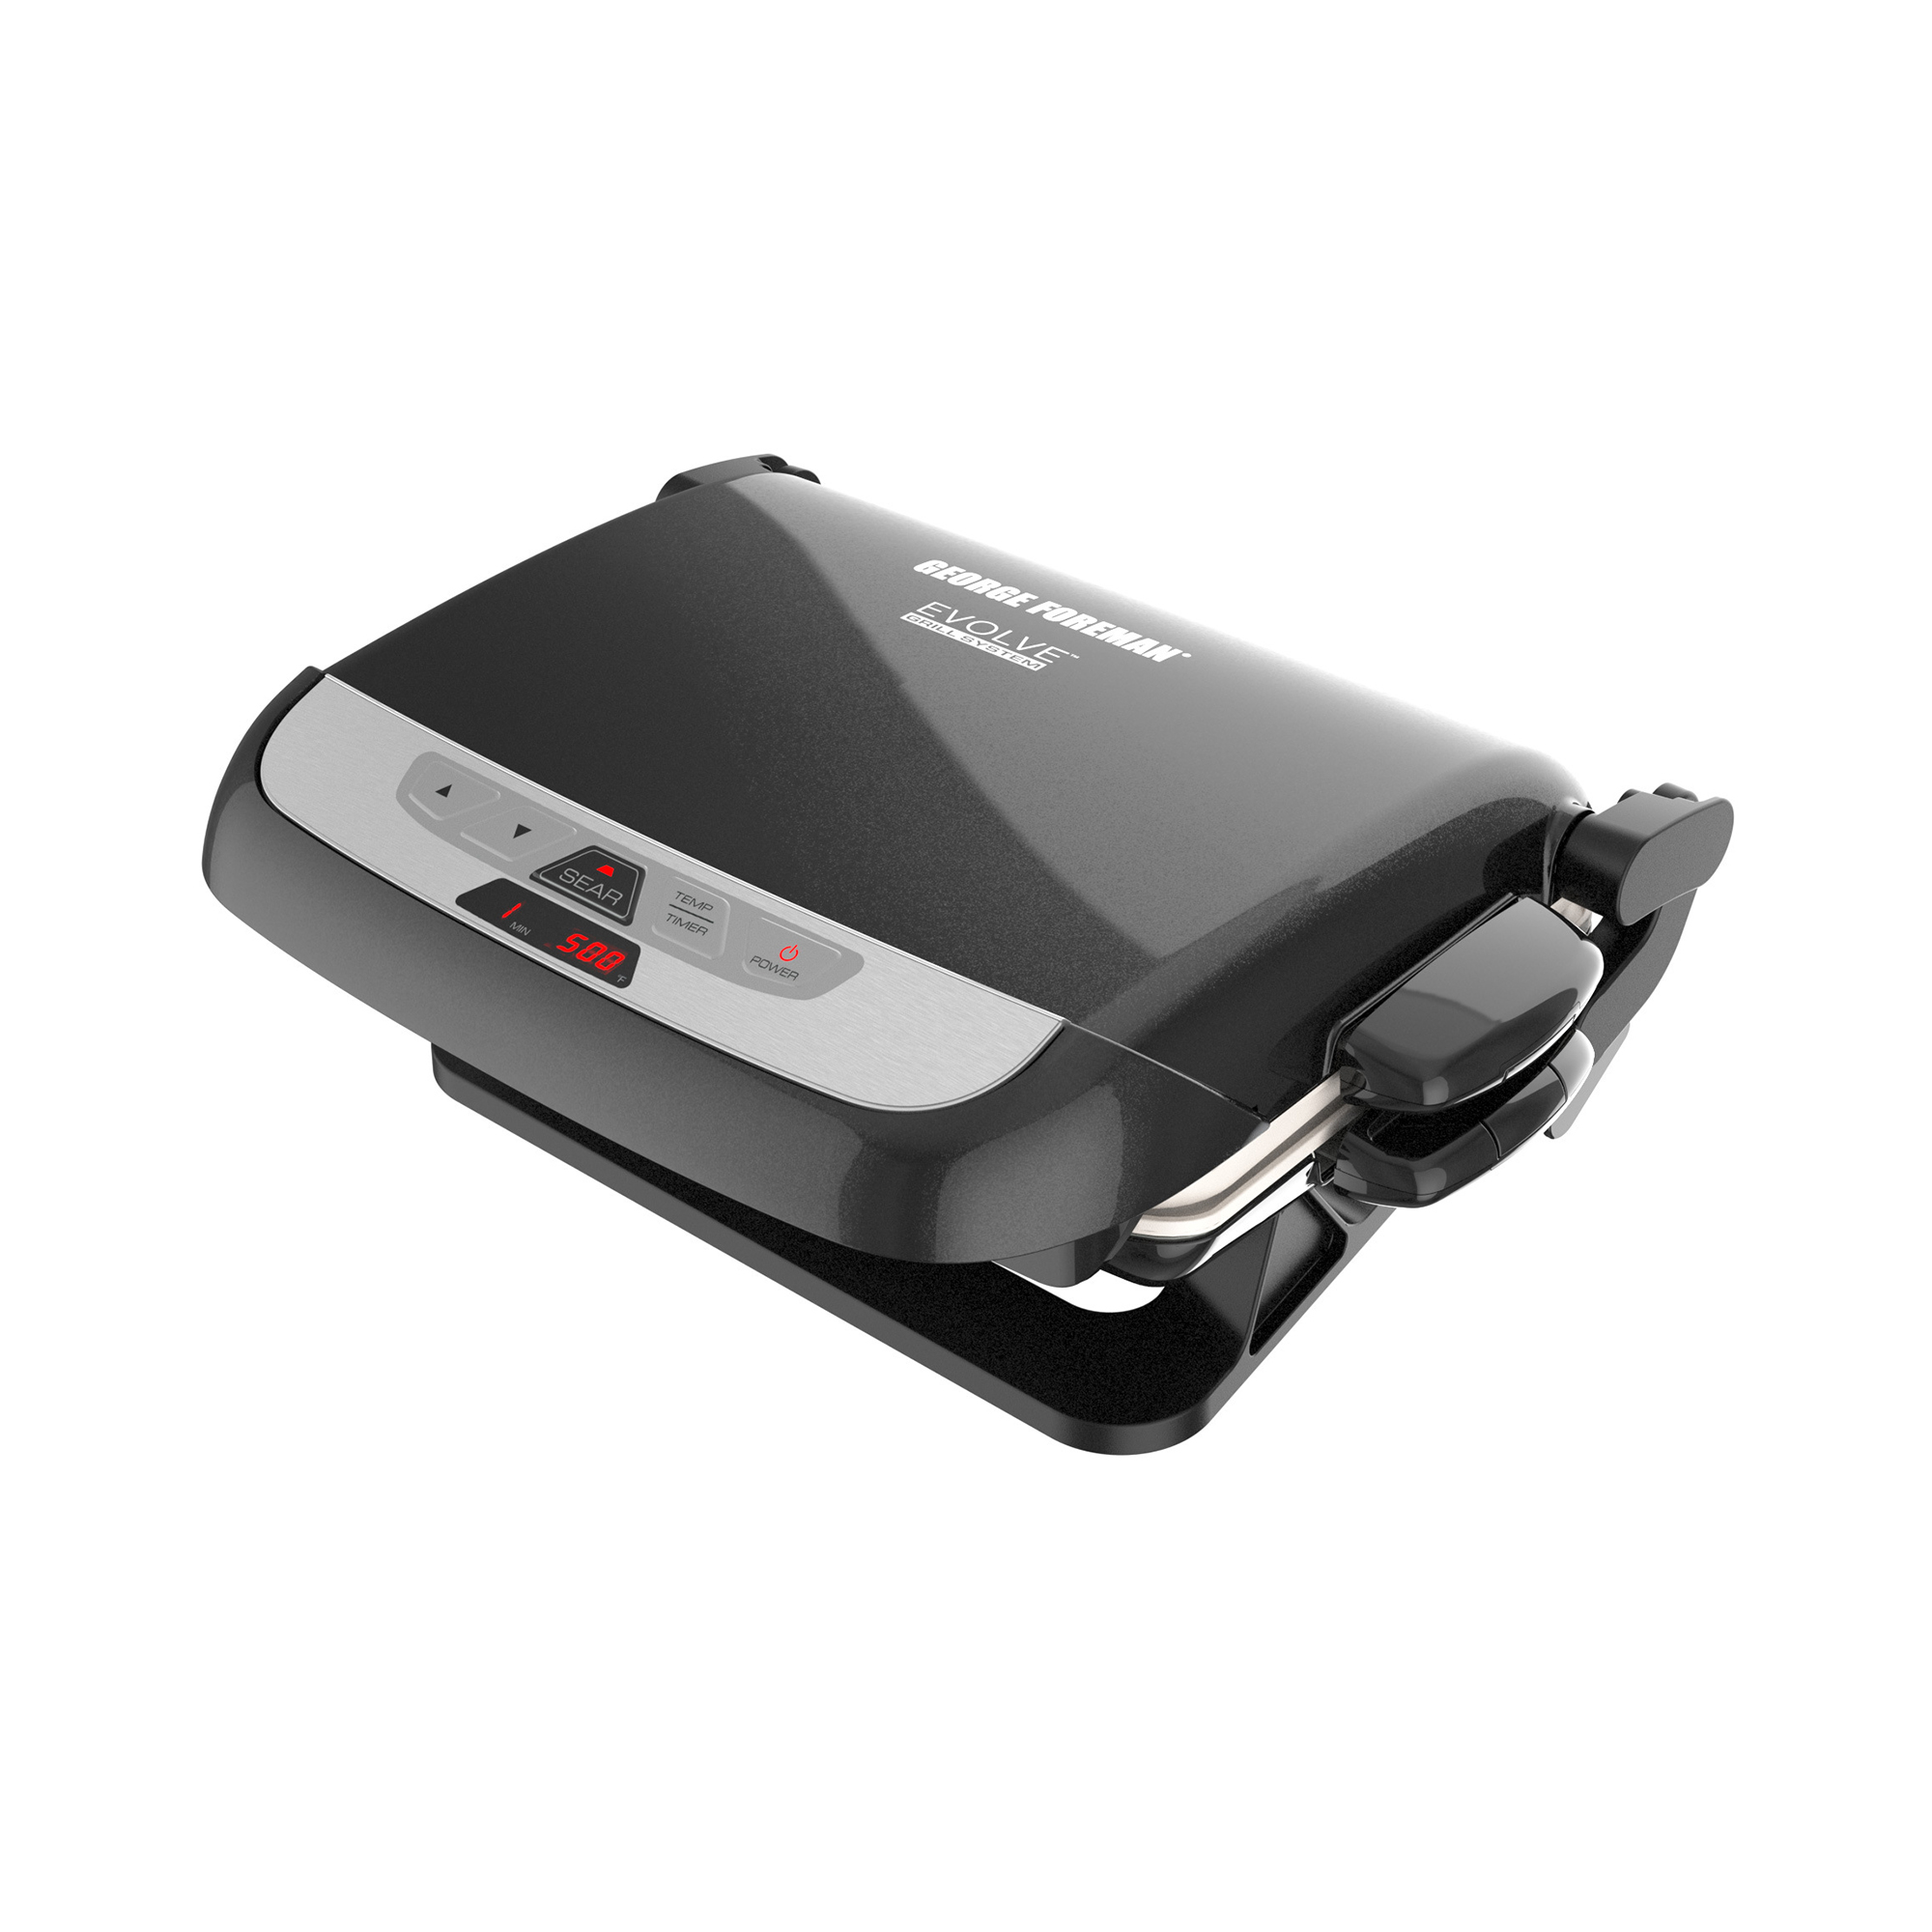 5-Serving Evolve Grill with Waffle Plates and Ceramic Grill Plates - Black  sc 1 st  George Foreman & 5-Serving Evolve Grill with Waffle Plates and Ceramic Grill Plates ...